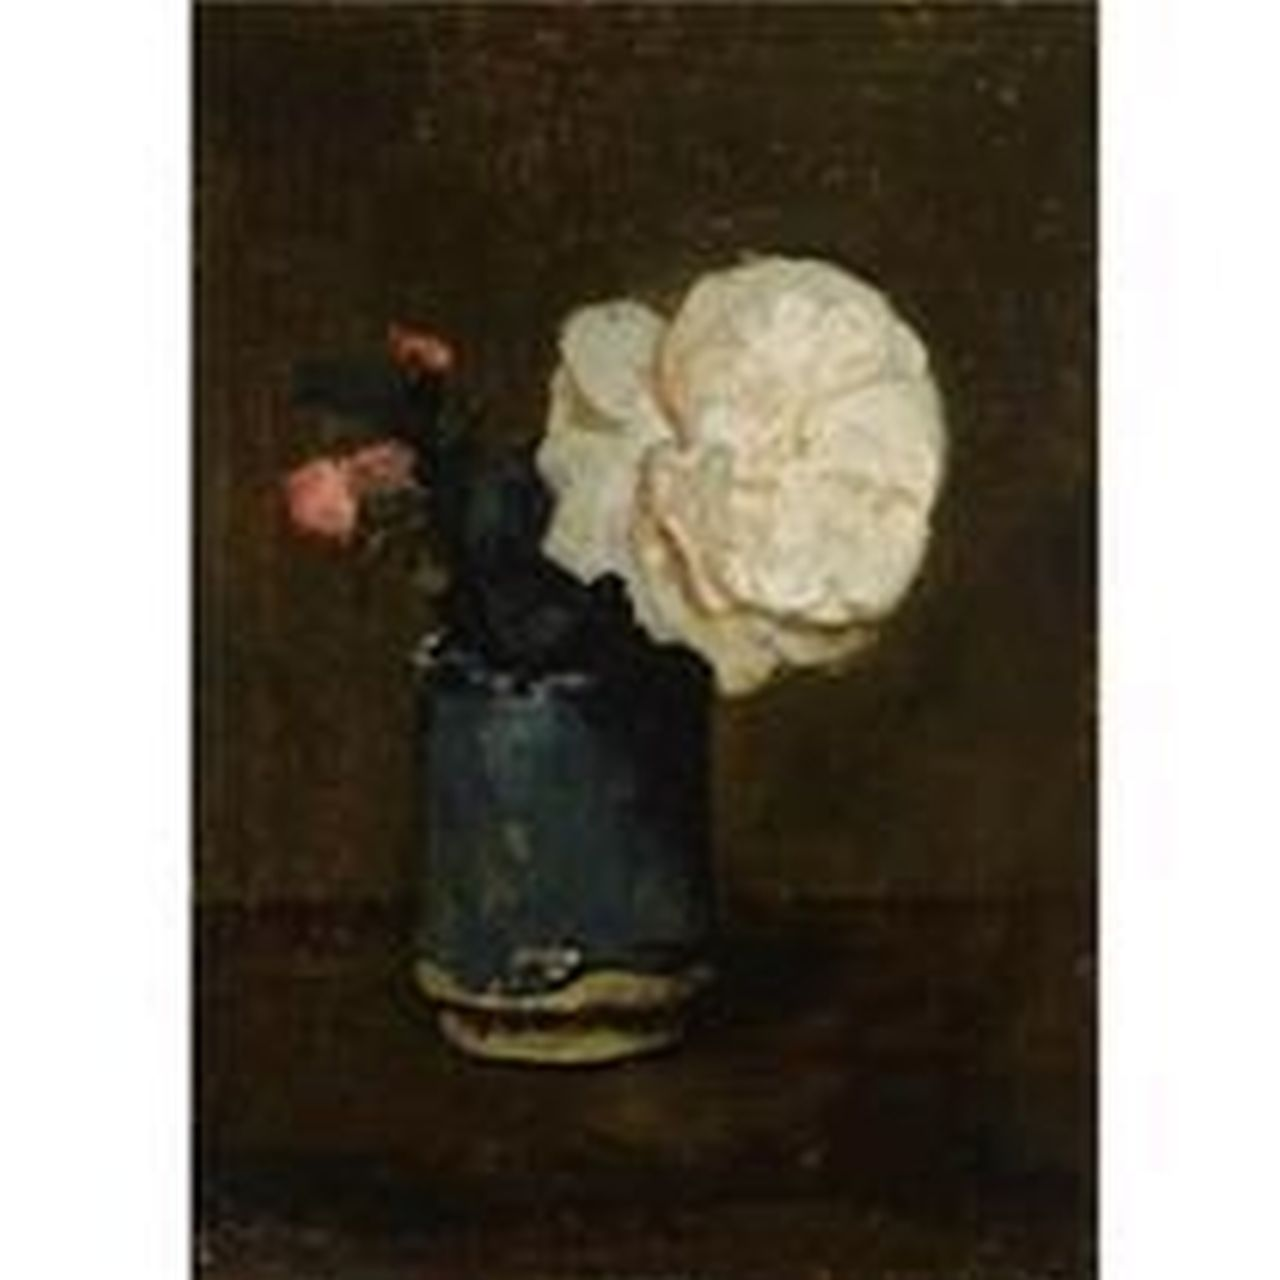 Arntzenius P.F.N.J.  | Pieter Florentius Nicolaas Jacobus 'Floris' Arntzenius, Roses in a green vase, oil on panel 30.0 x 21.0 cm, signed l.l. and painted ca. 1915